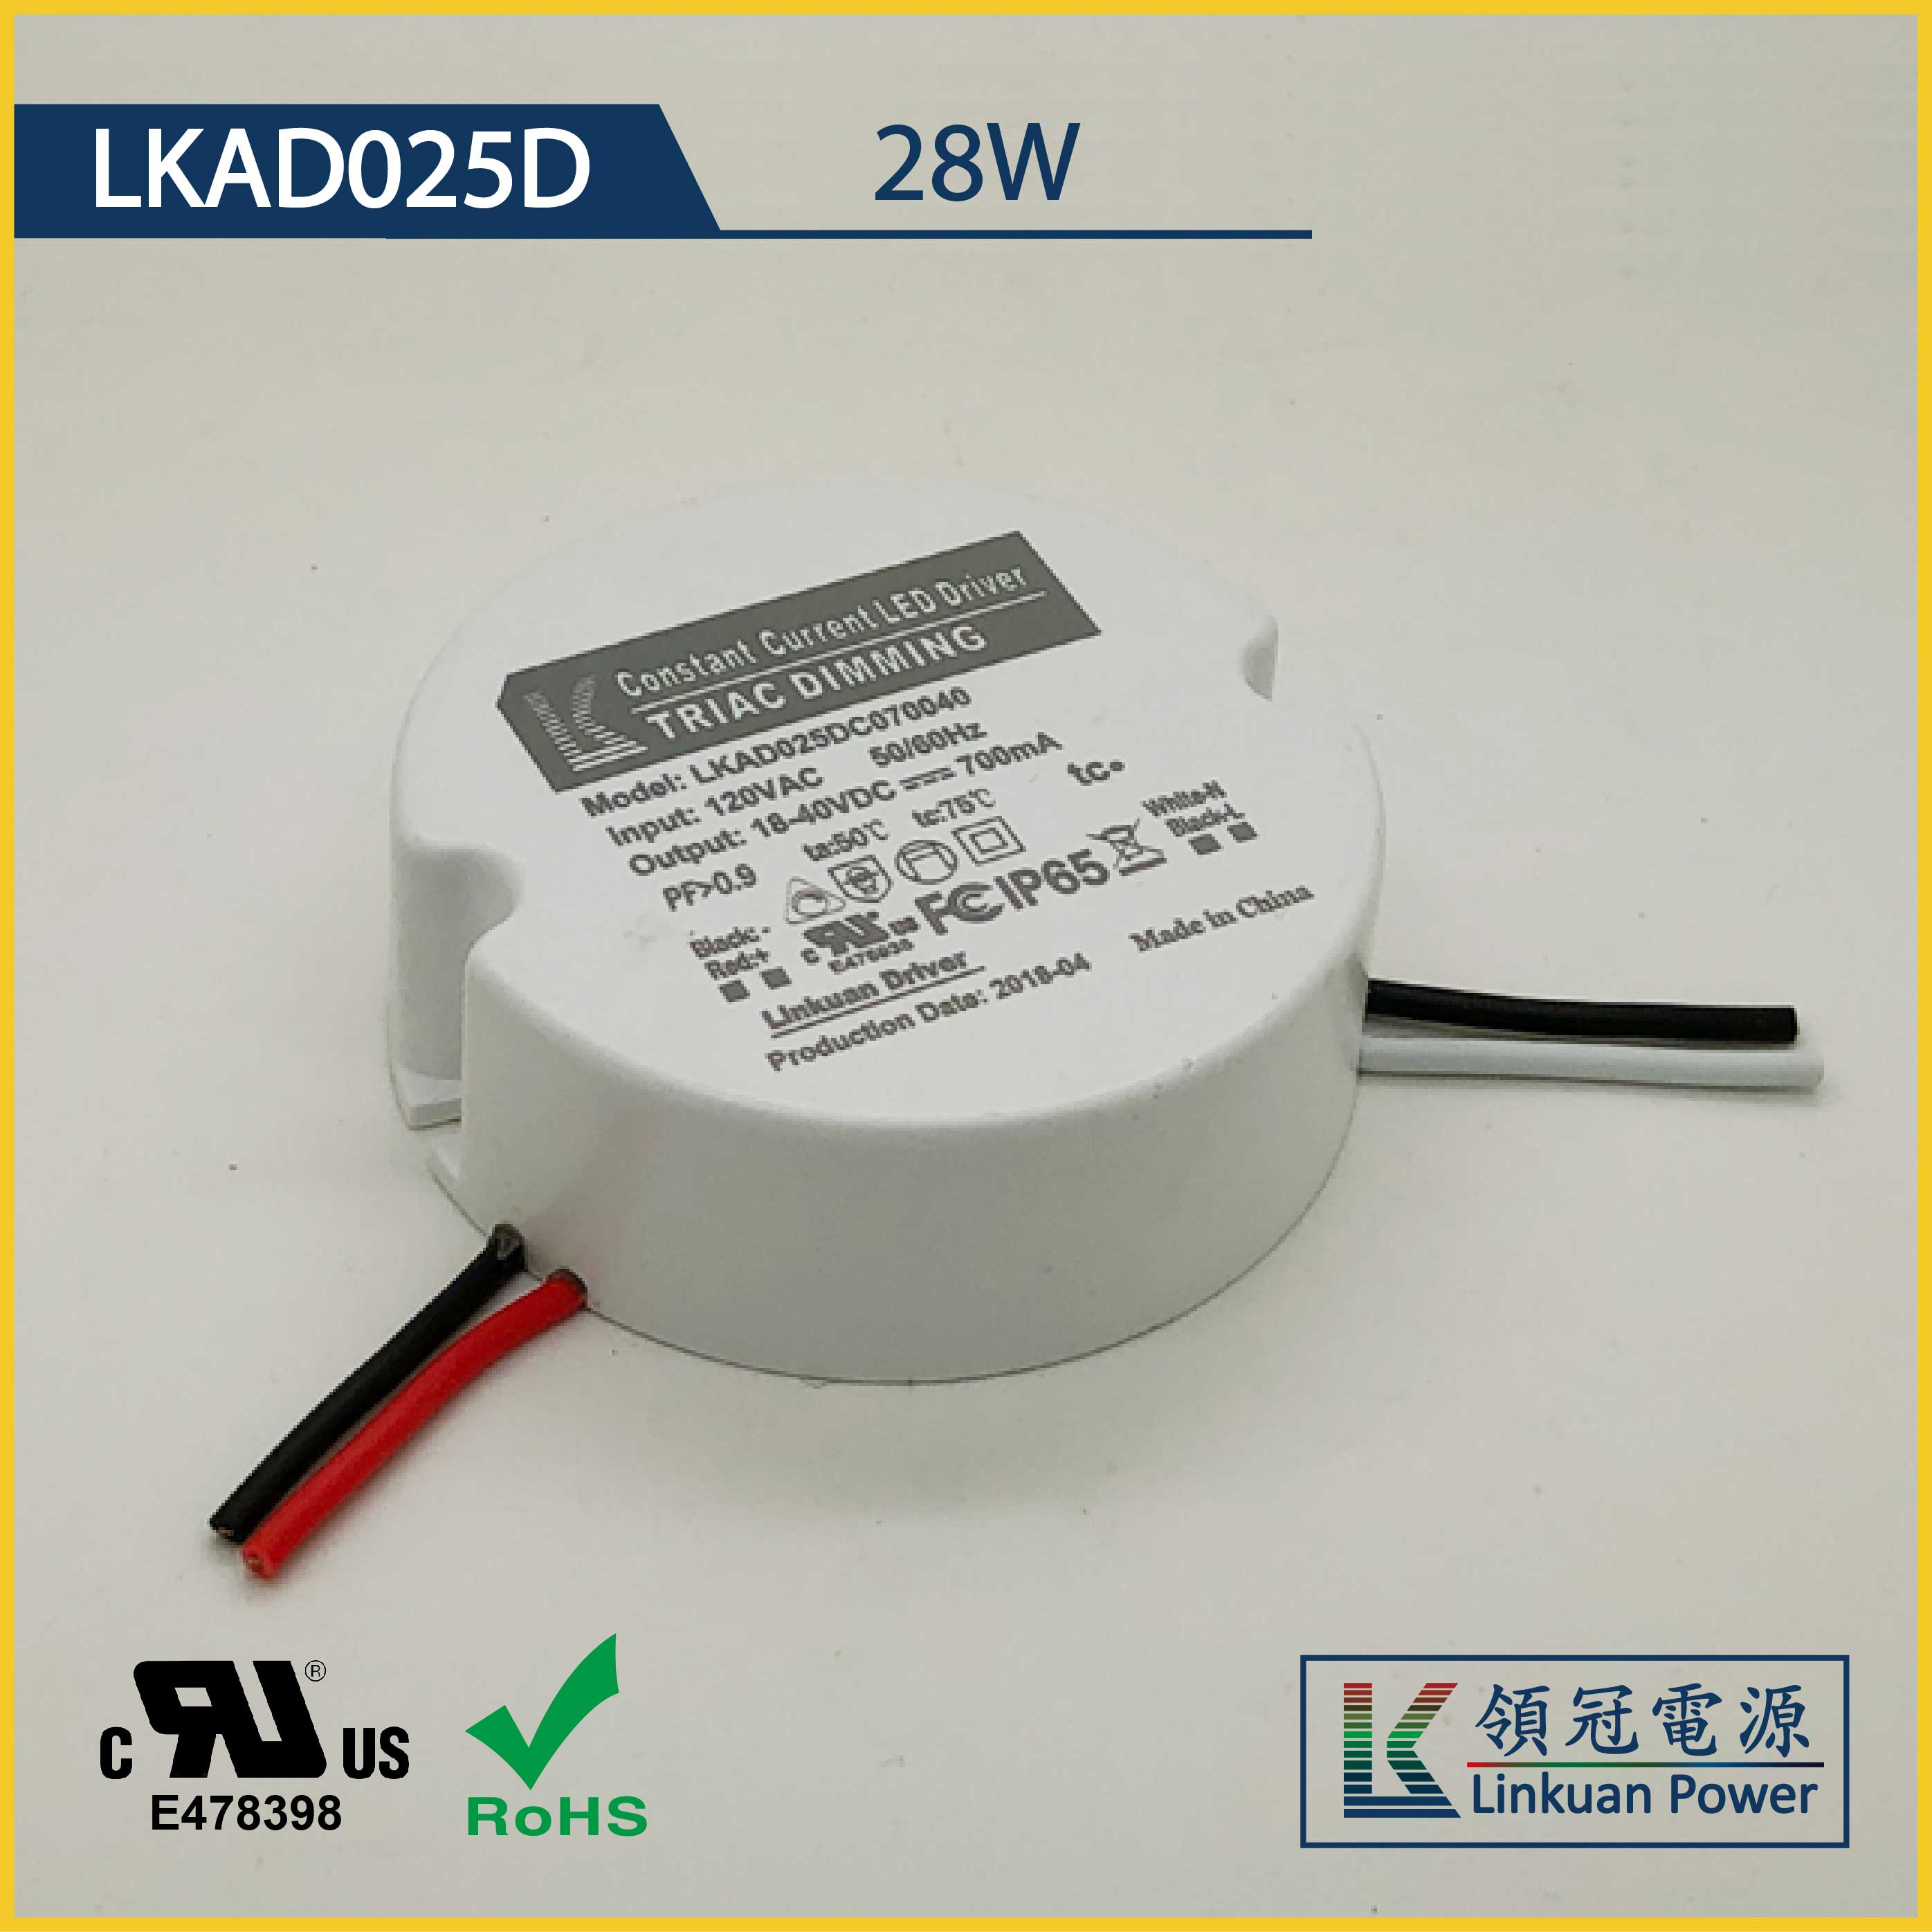 LKAD025D 28W 9-20V 1200 Dimmable LED drivers